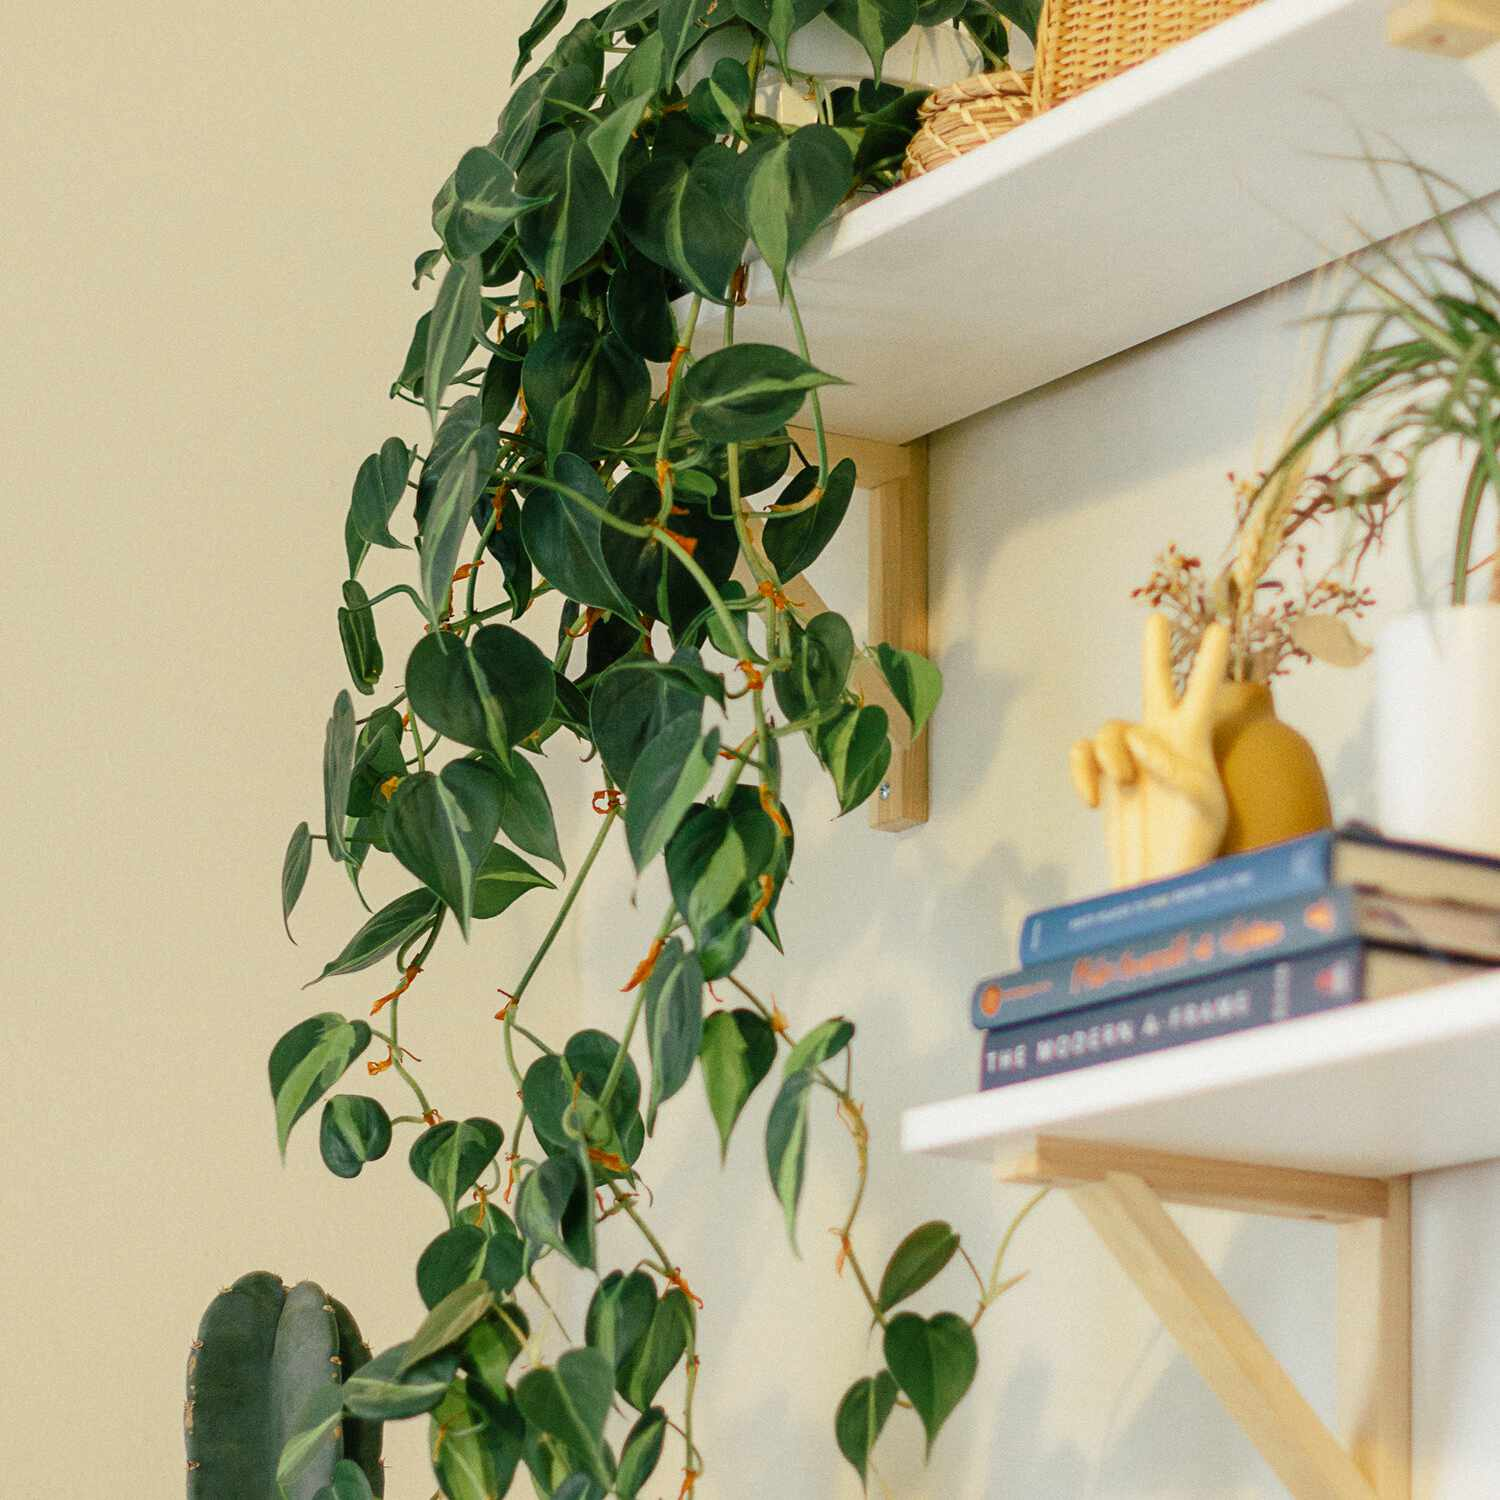 Trailing heartleaf philodendron on a high shelf